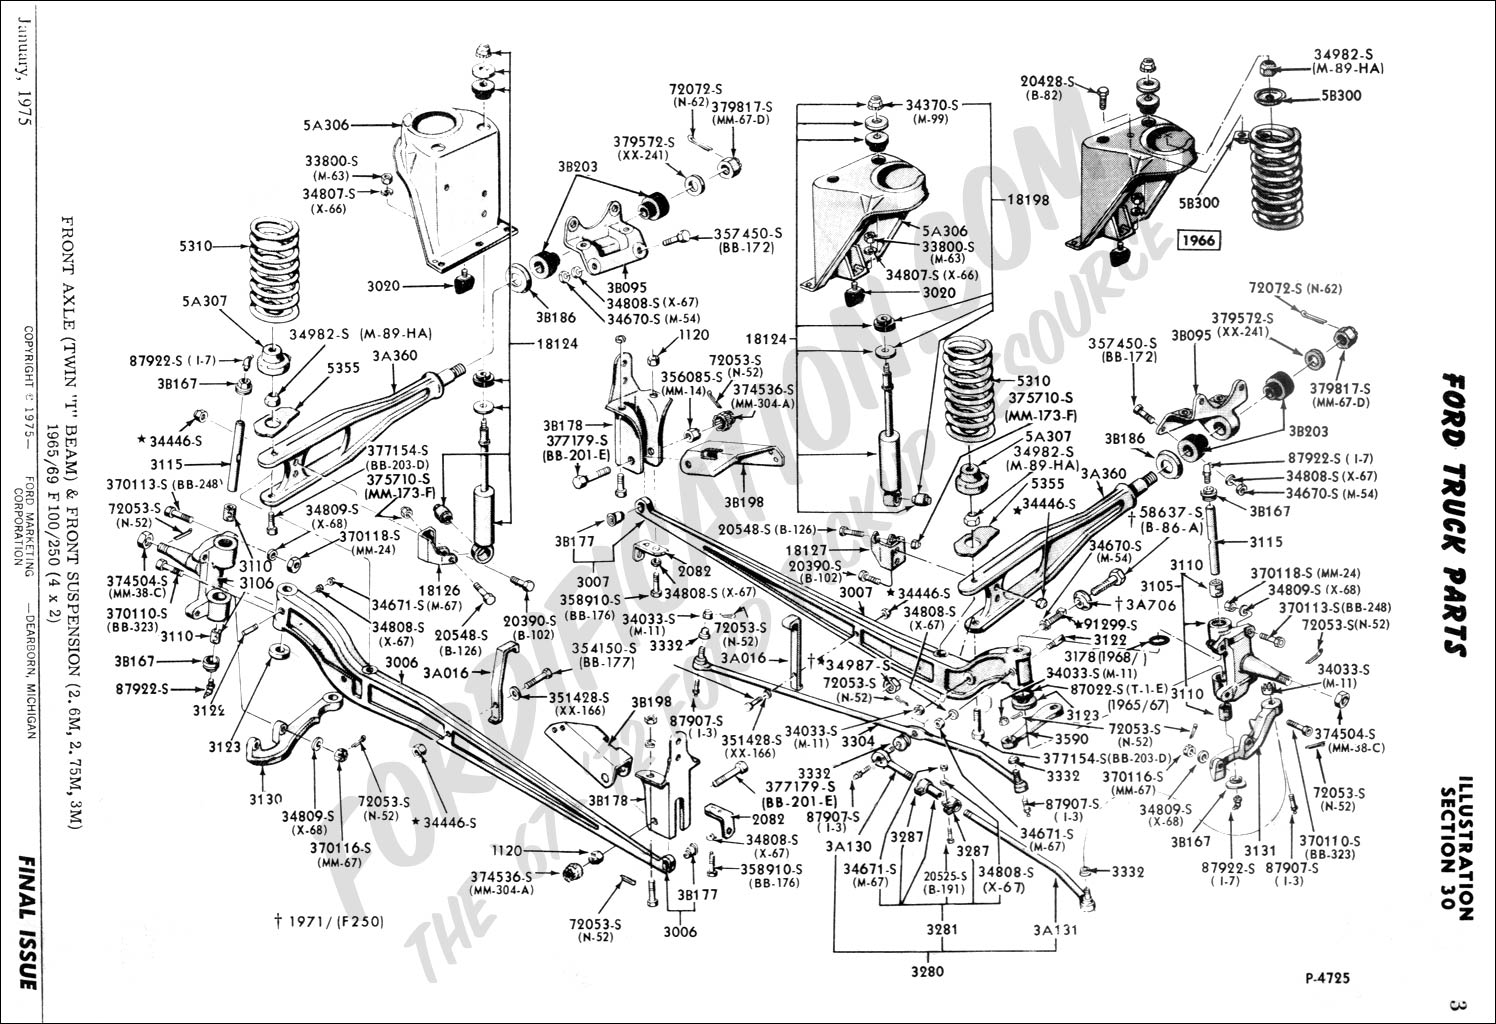 Ford Fiesta Interior Parts Diagram further 1710 Ford Tractor Wiring Diagram additionally 1964 Ford F100 4x4 Suspension together with Rotax 447 Wiring Diagram furthermore 1965 Ford Mustang Transmission Diagram Html. on 1126890 65 ford f100 wiring diagrams